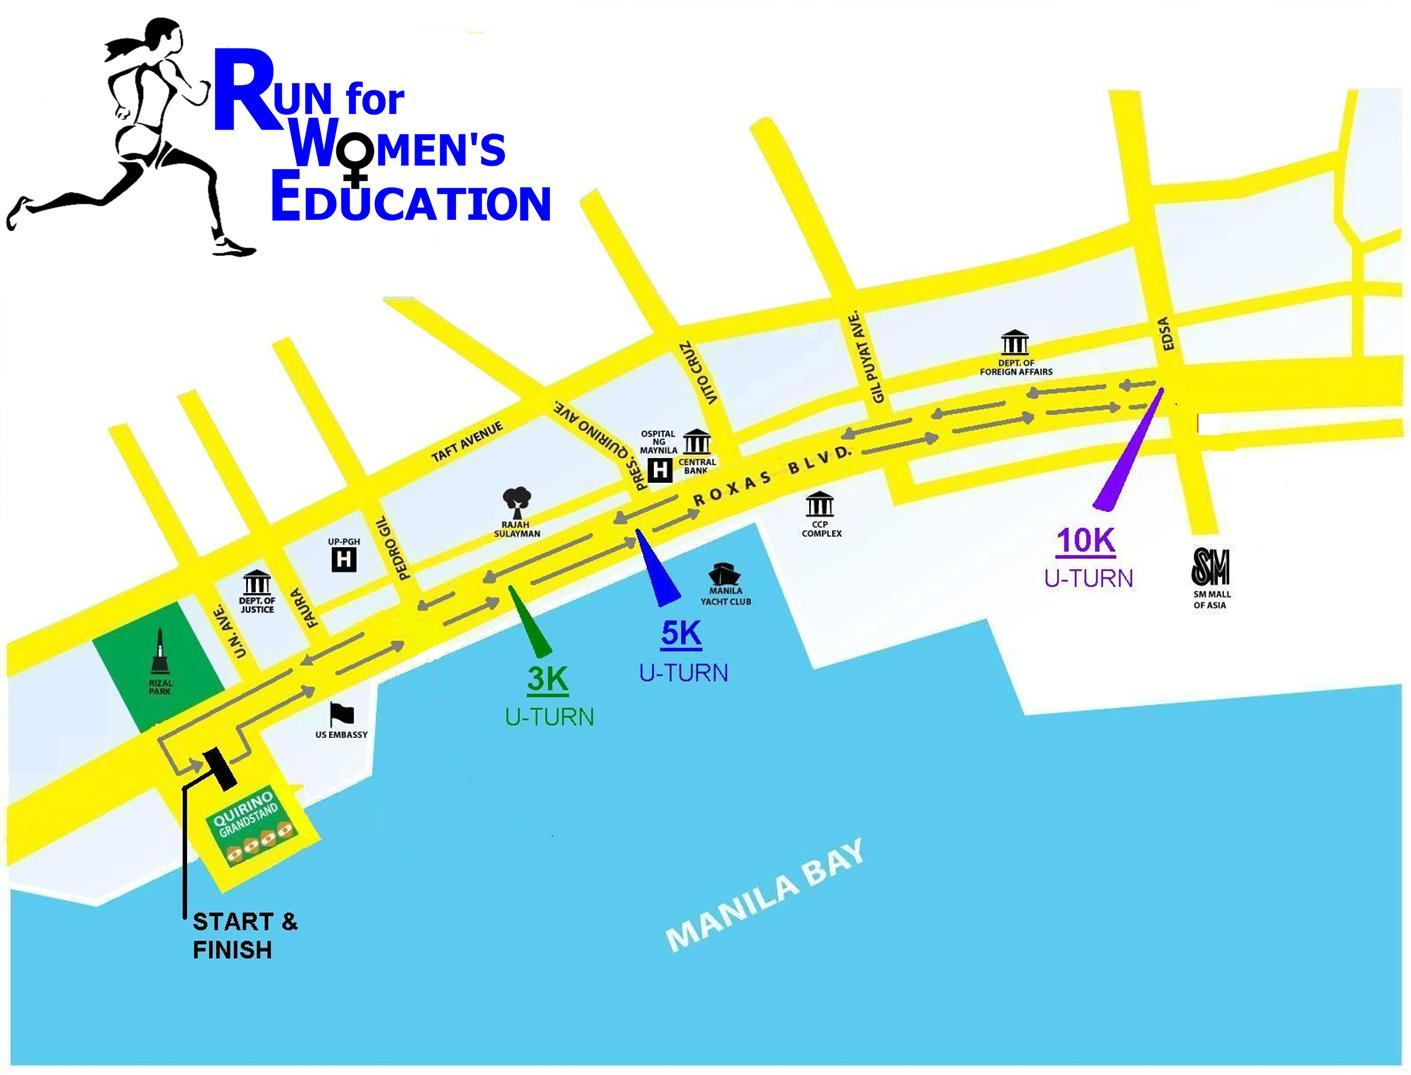 run-for-women's-education-2014-race-route